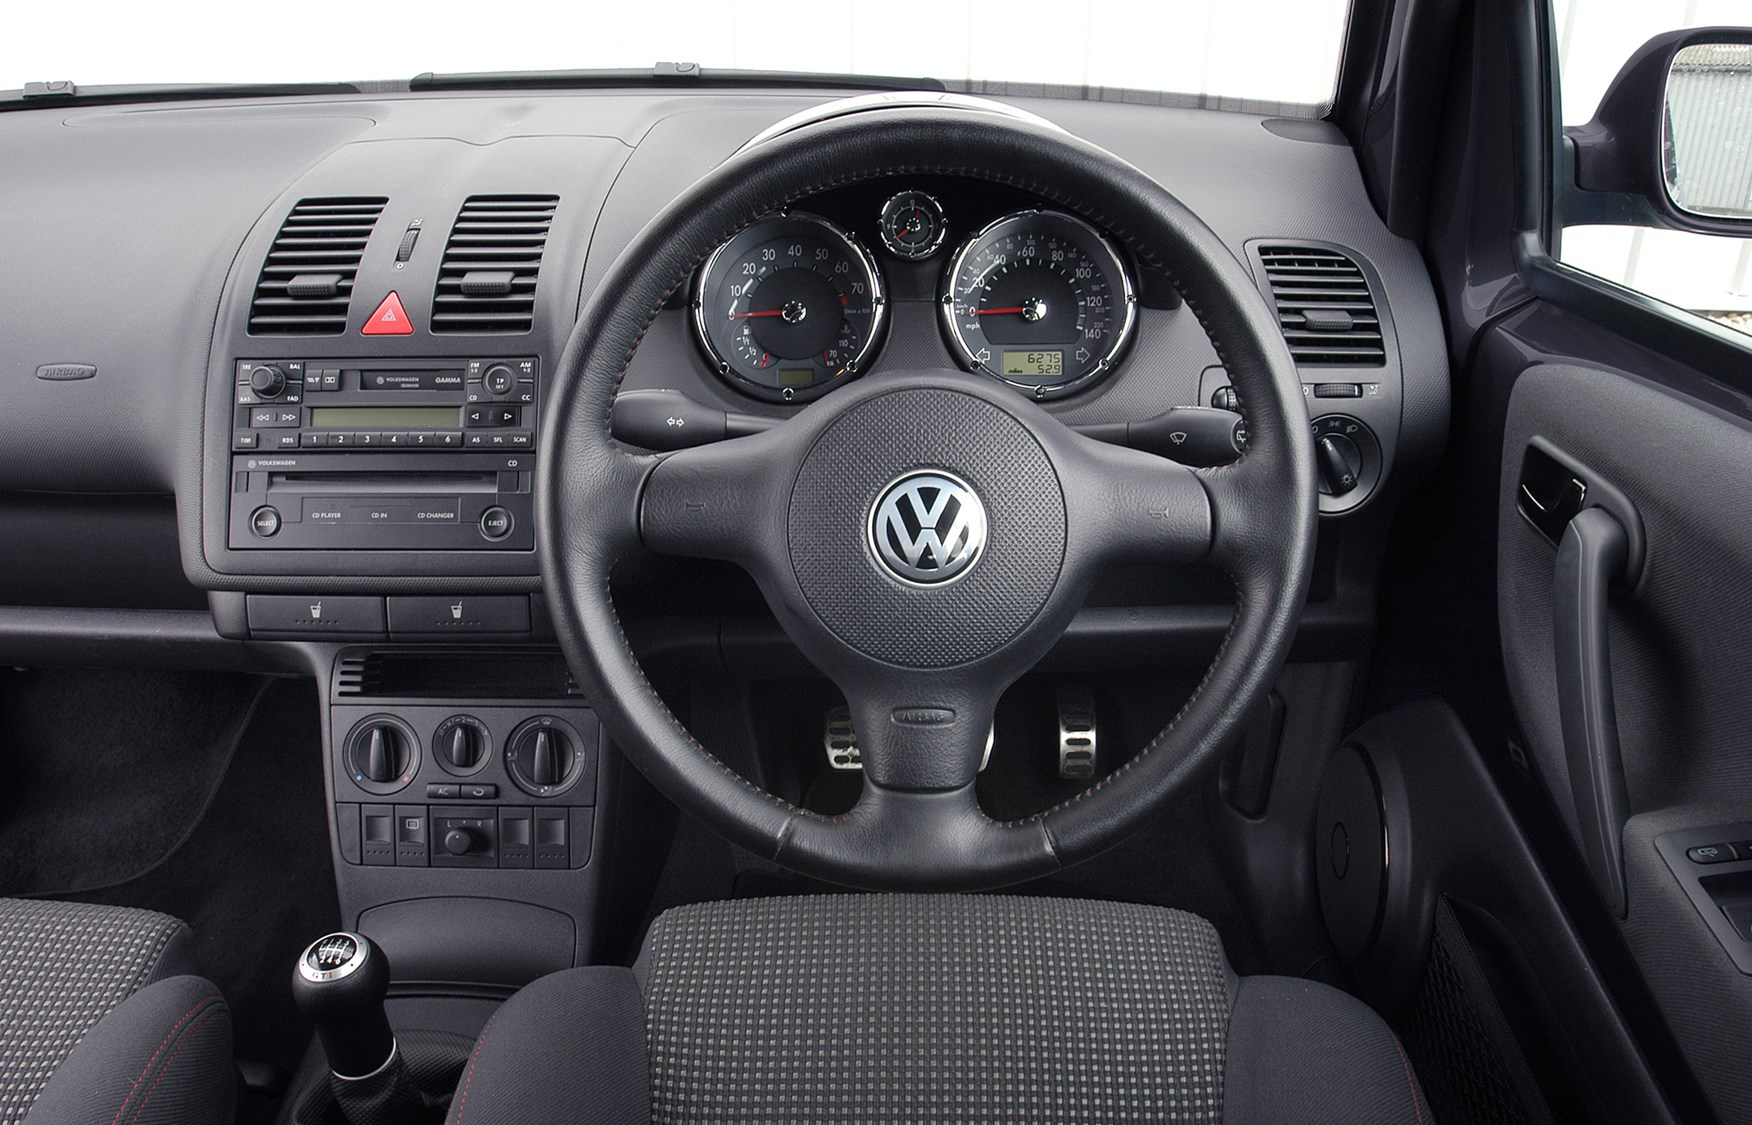 Volkswagen Lupo Hatchback (1999 - 2005) Features, Equipment and ...